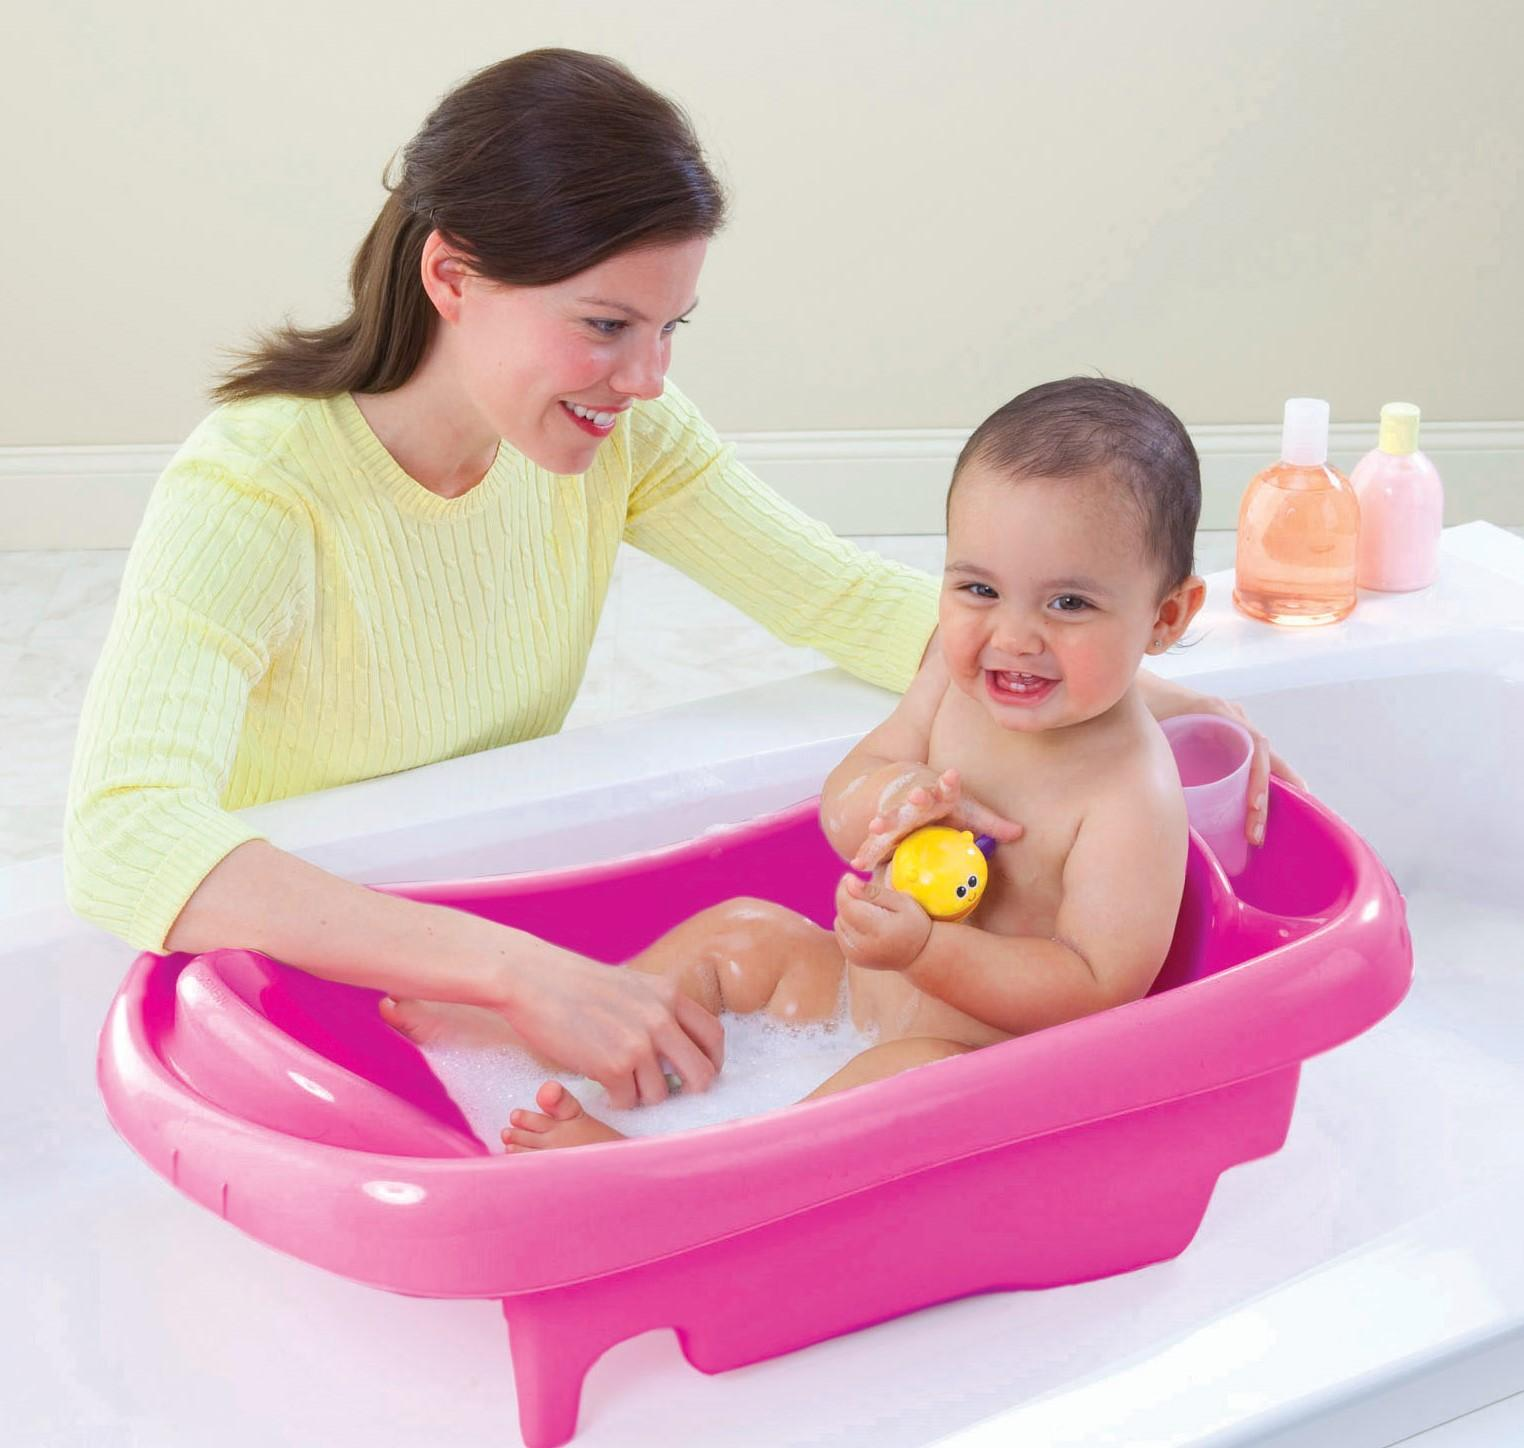 baby bath tub seat sling infant to toddler safety chair anti slip blue pink fun ebay. Black Bedroom Furniture Sets. Home Design Ideas